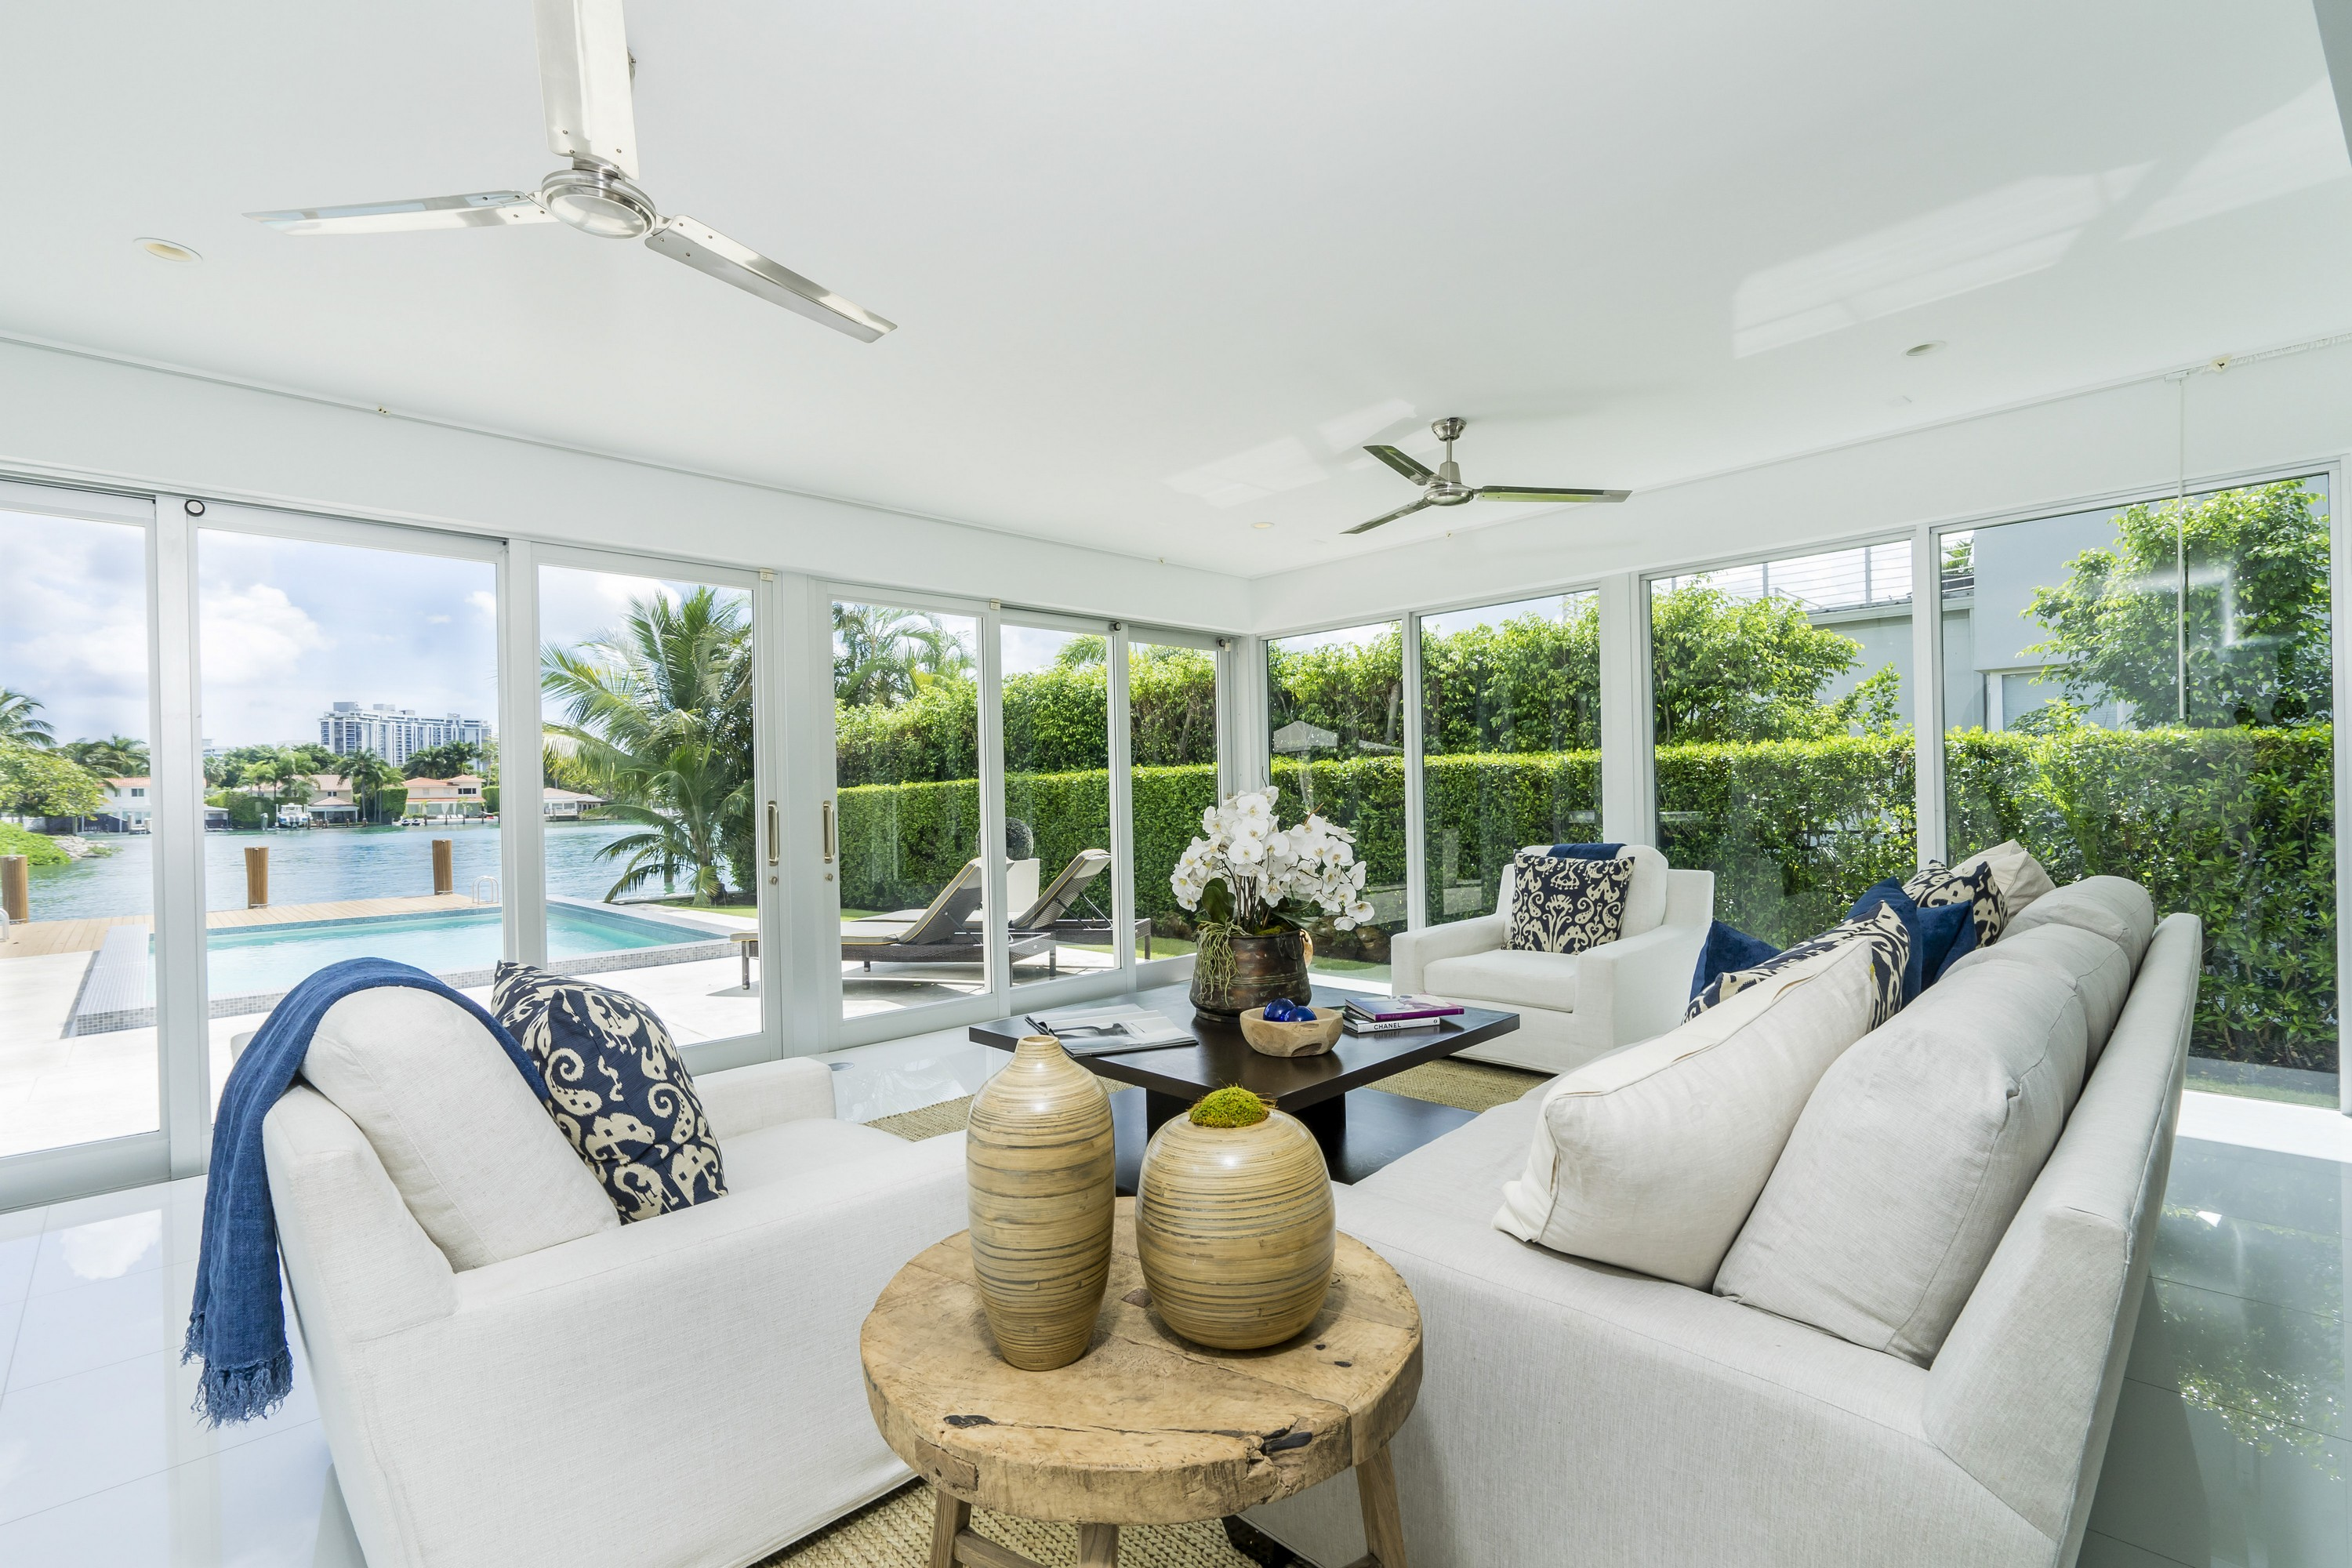 Single Family Home for Sale at 425 E Dilido Dr Miami Beach, Florida, 33139 United States